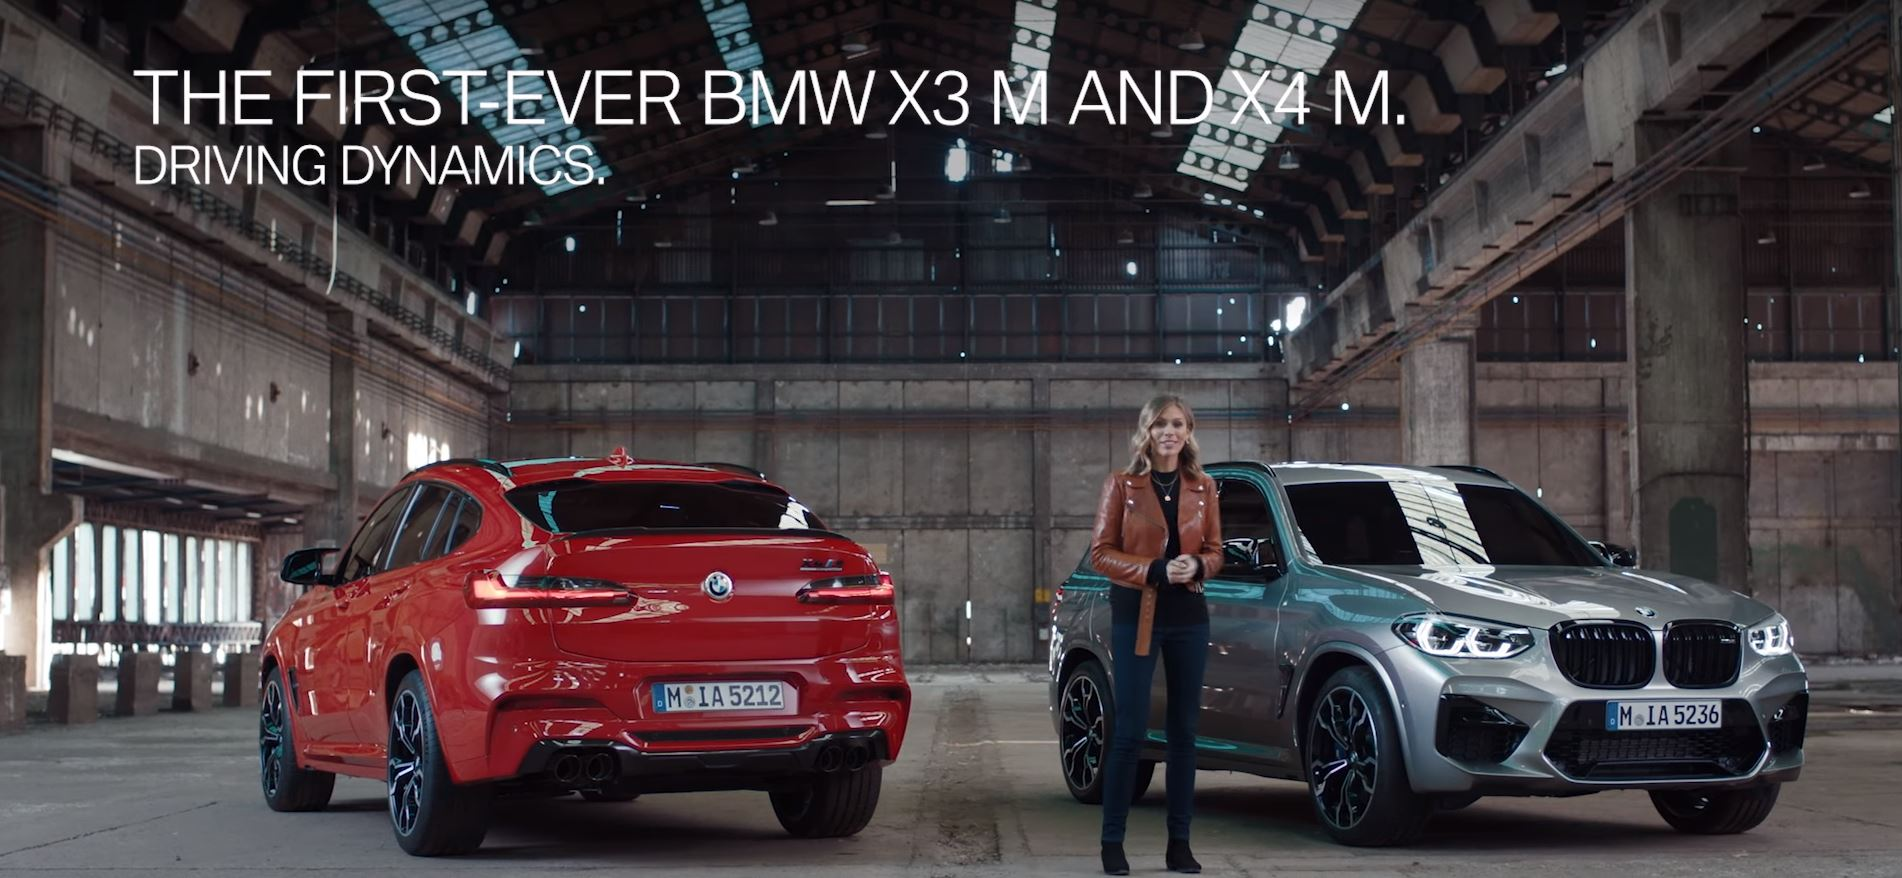 BMW X3 M and X4 M Driving Dynamics Briefly Looked Over